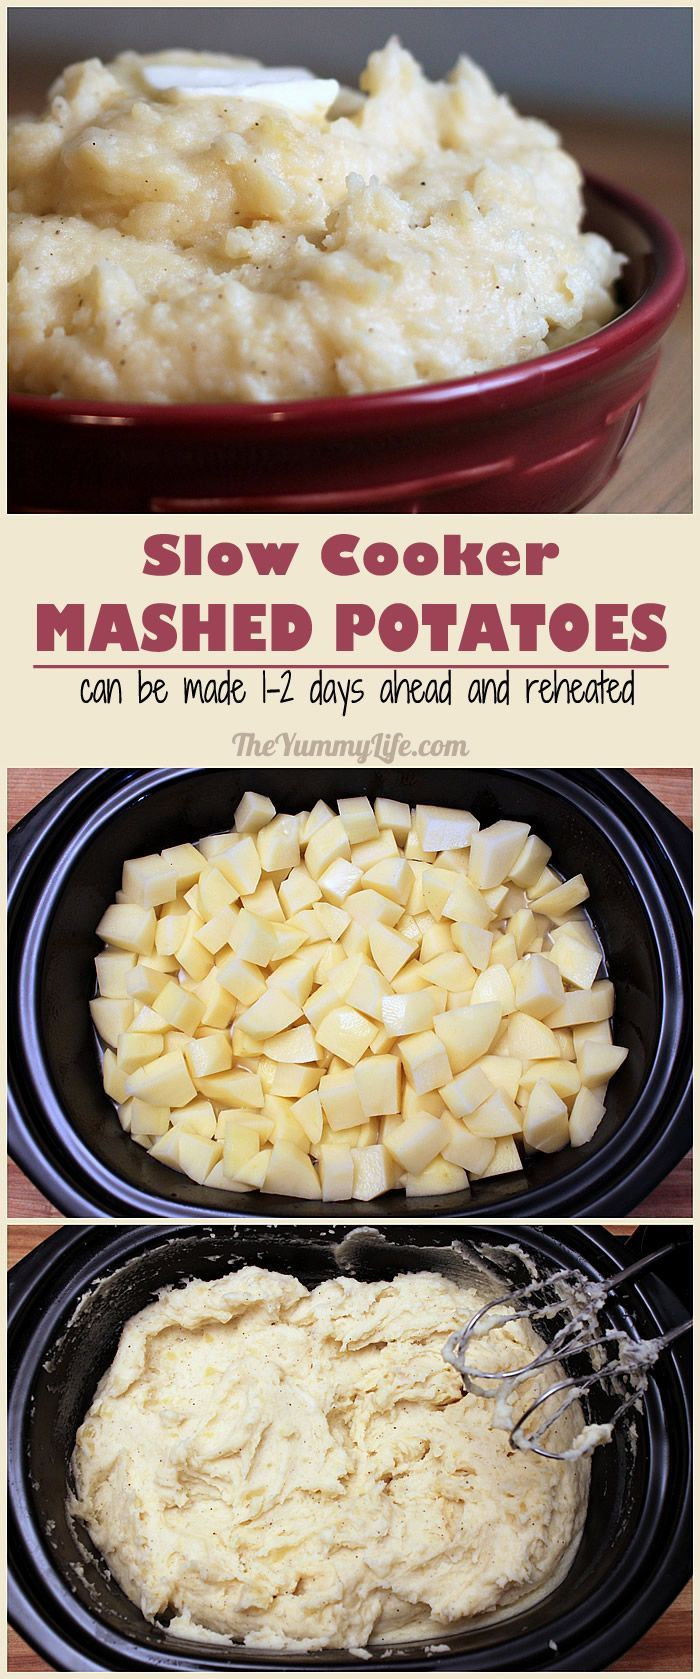 Slow Cooker Mashed Potatoes. Cook them ahead and keep them warm without using any stove-top space. Great for Thanksgiving and holiday cooking. Tips for choosing the right potatoes & avoiding gluey potatoes. from The Yummy Life